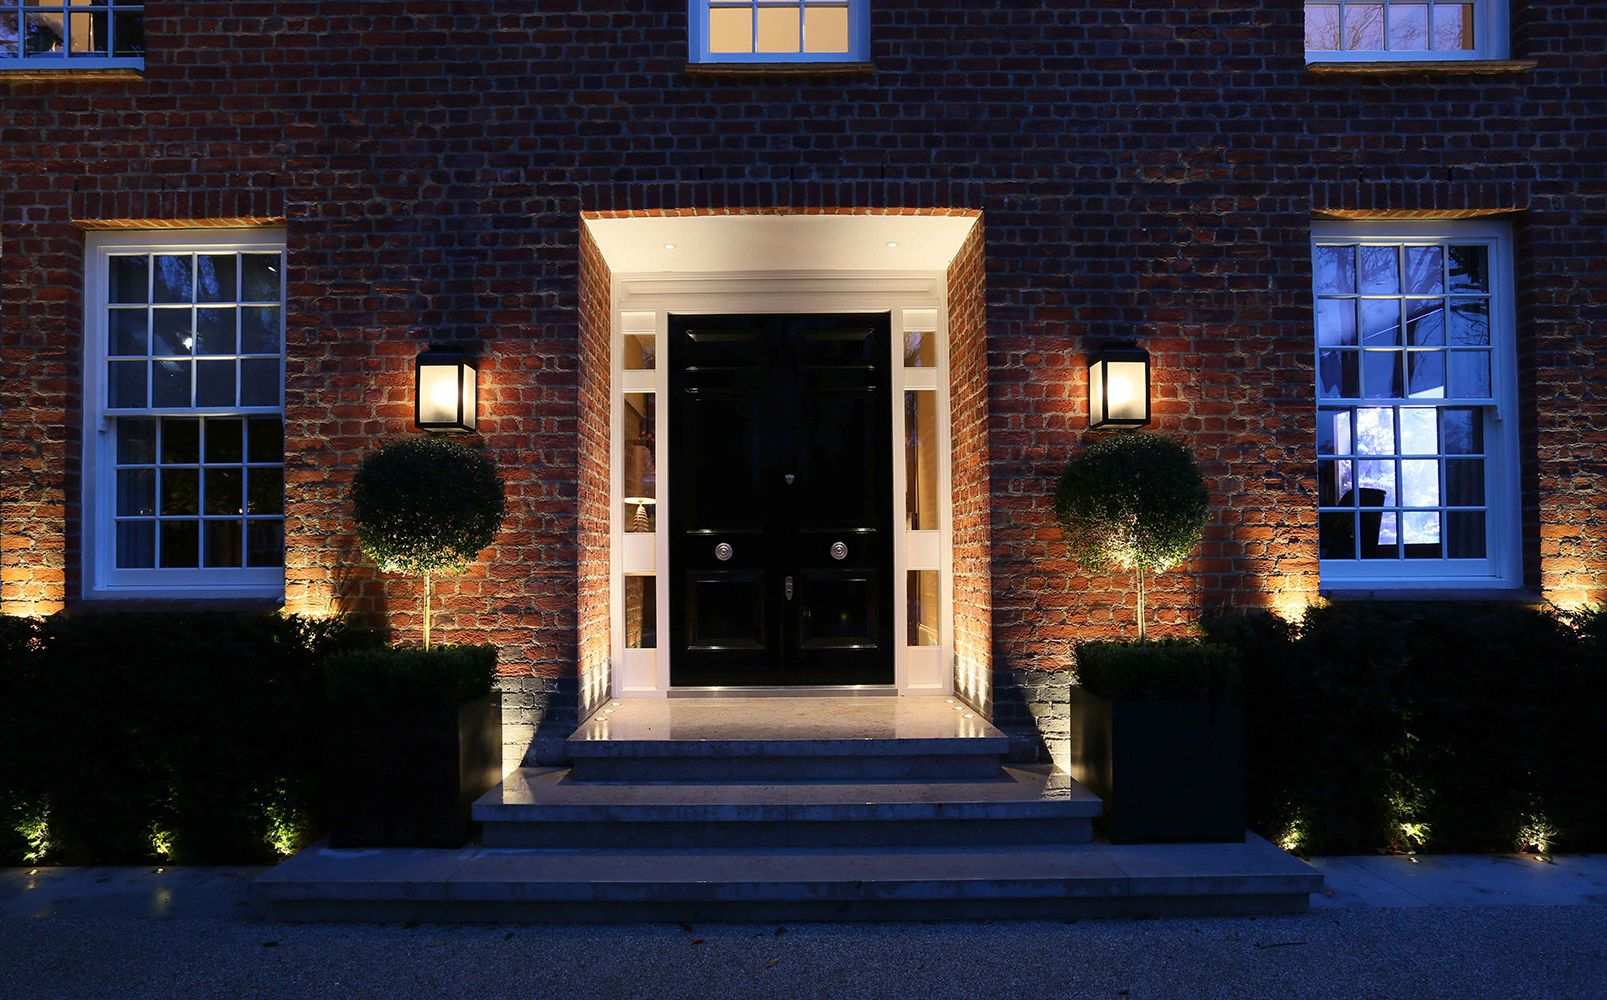 John cullen garden exterior outdoor lighting 61 gardens for Exterior outdoor lighting